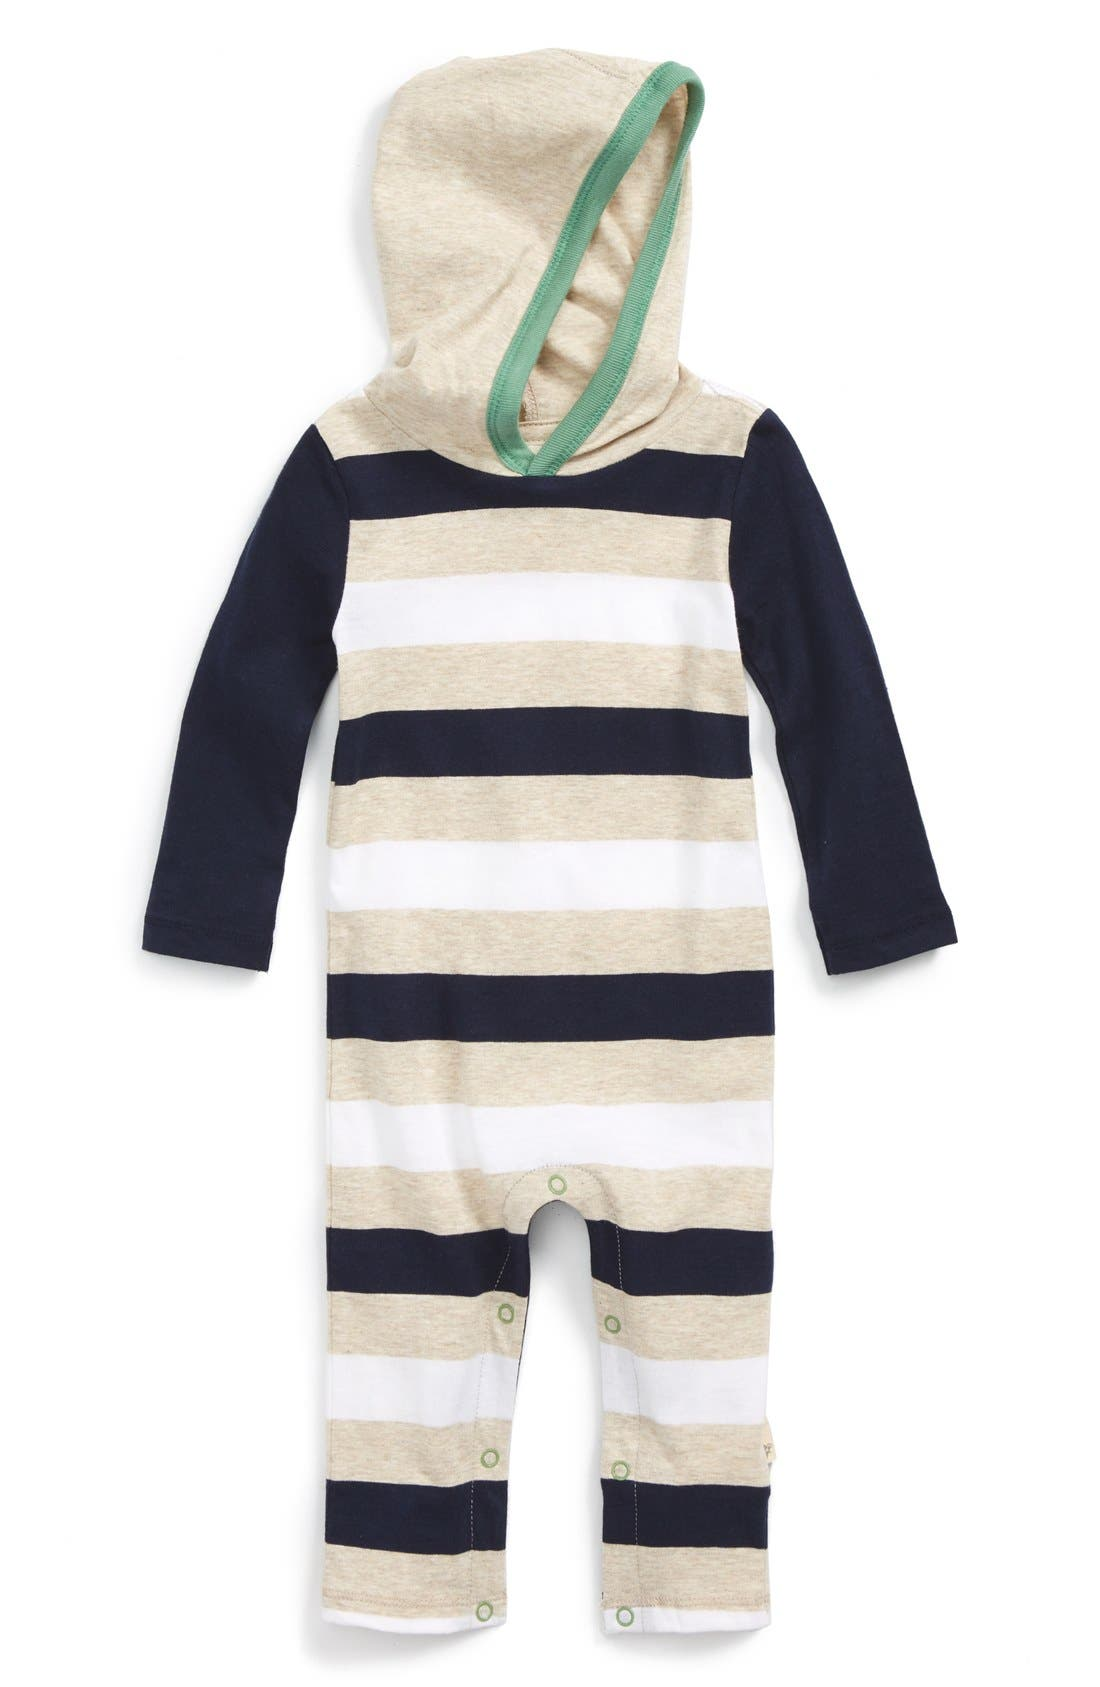 BURT'S BEES BABY Hooded Organic Cotton Romper, Main, color, 410